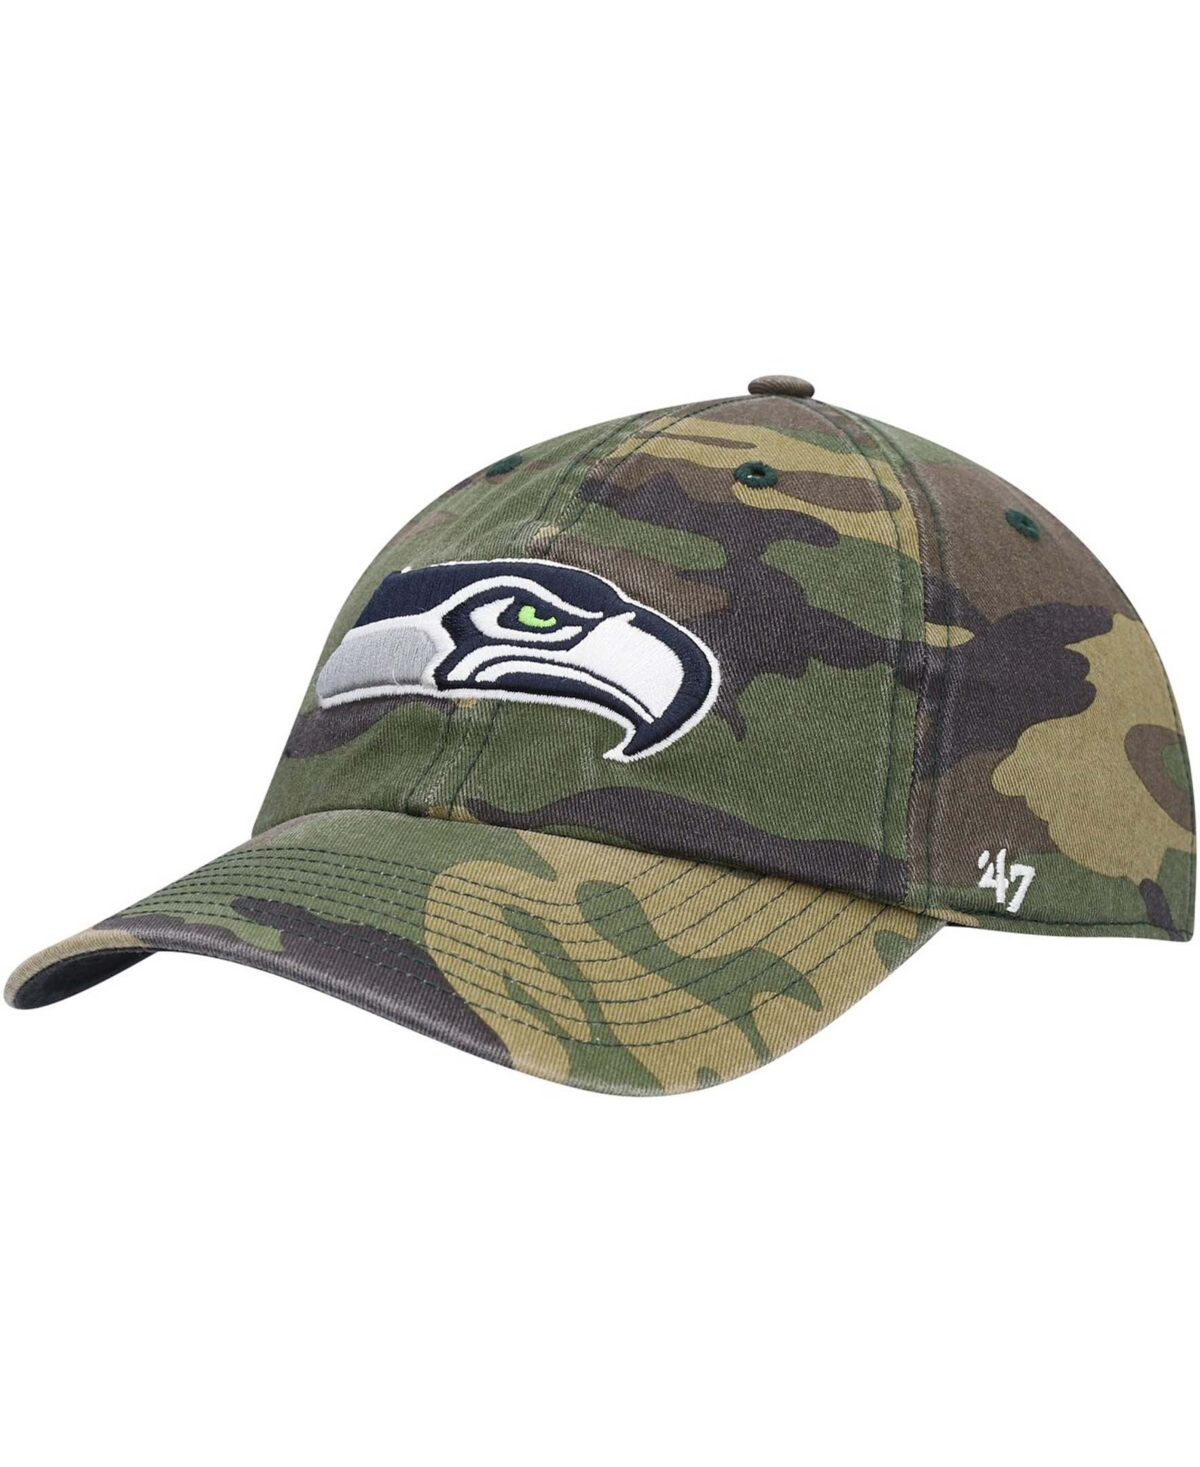 47 Mens Camo Seattle Seahawks Woodland Clean Up Adjustable Hat